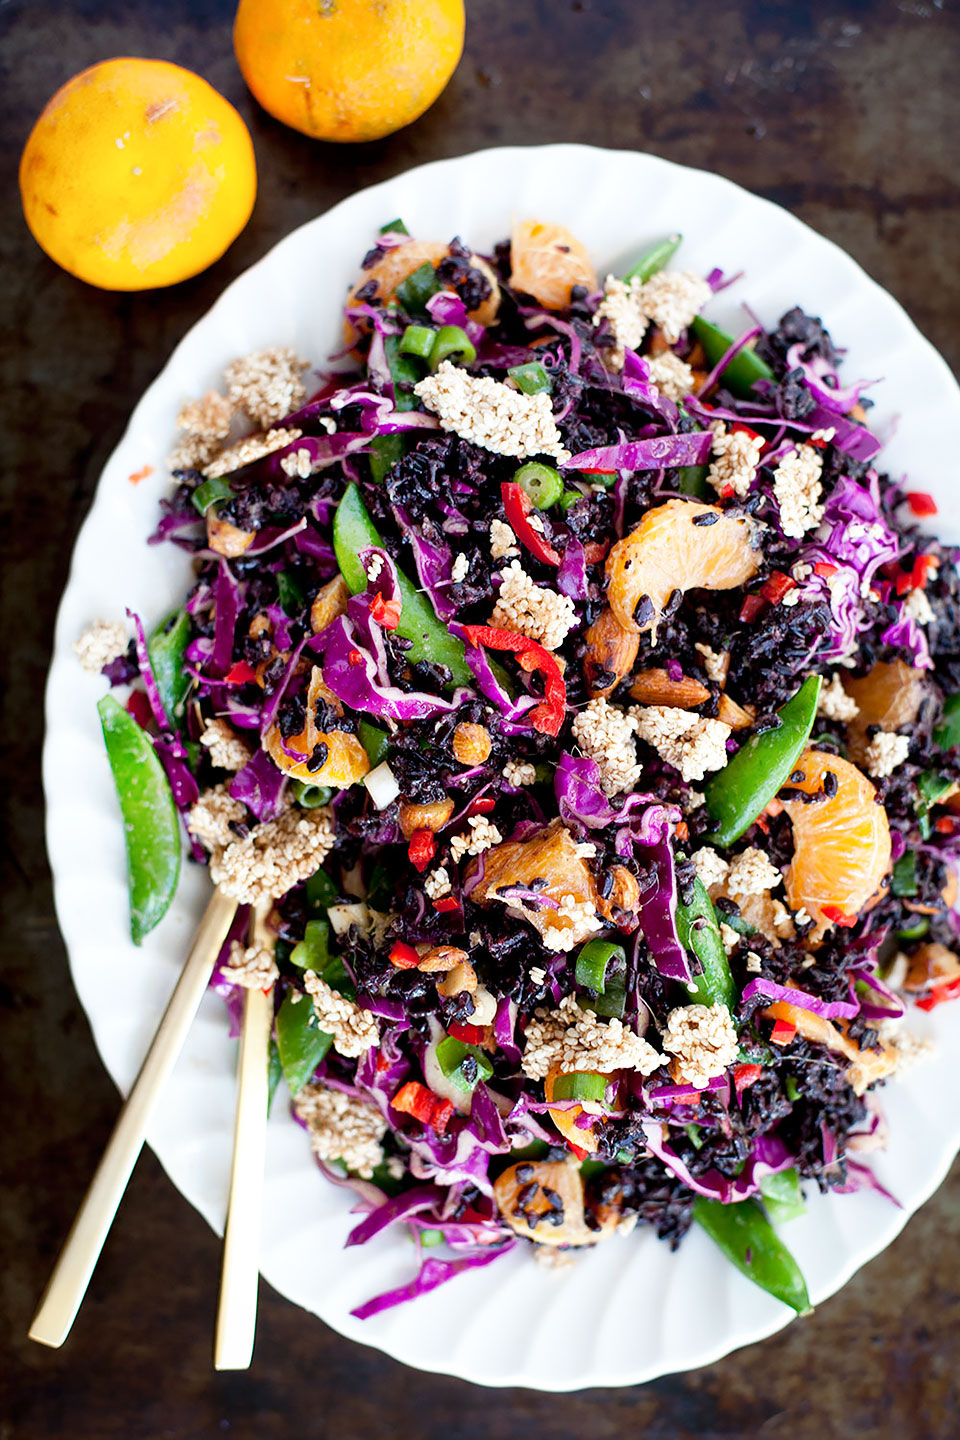 ORANGE & ALMOND BLACK RICE SALAD | A delicious salad served with snap peas, cabbage and ginger vinaigrette, full of flavor and crunch. Gluten-free and vegan. | LOVELEAF CO. #salad #easyrecipe #recipe #glutenfree #dairyfree #vegan #dinner #healthy #blackrice